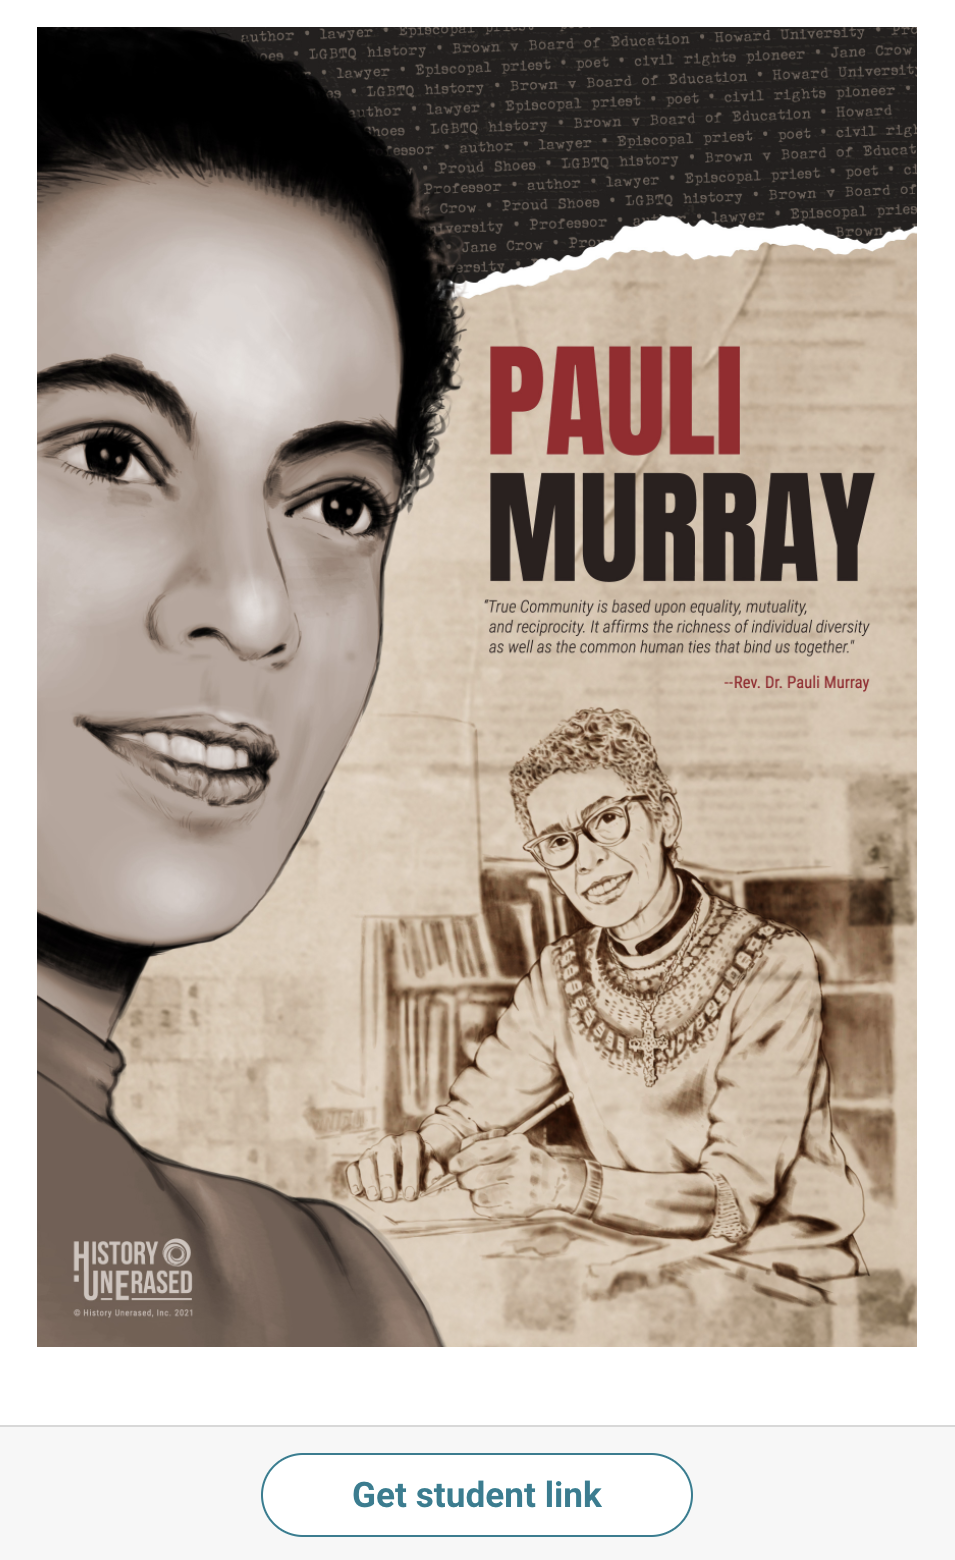 pauli murray instructional resource with get student link button